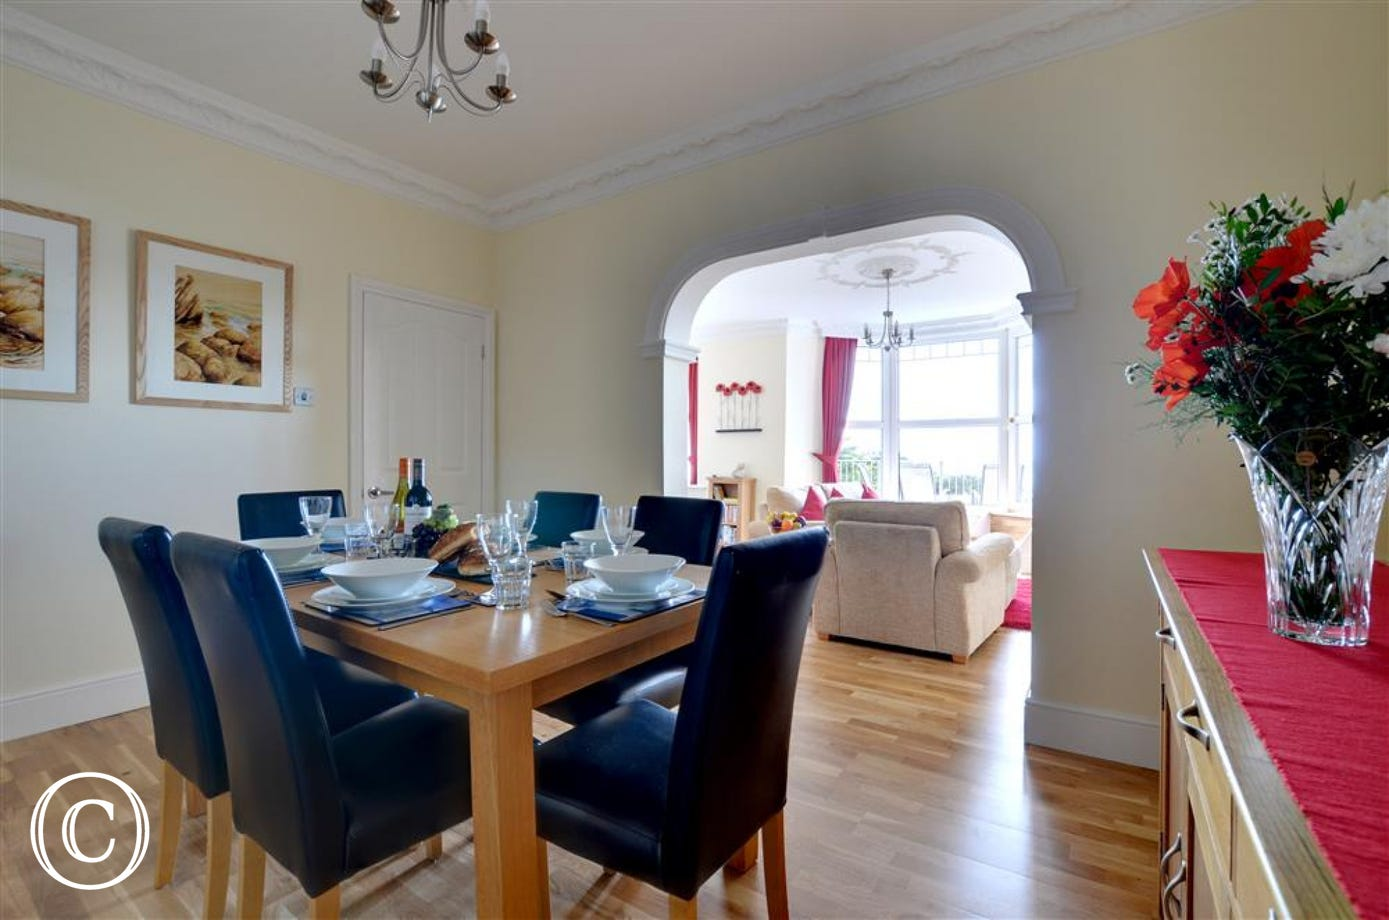 The property benefits from a separate dining room where you can dine in style!